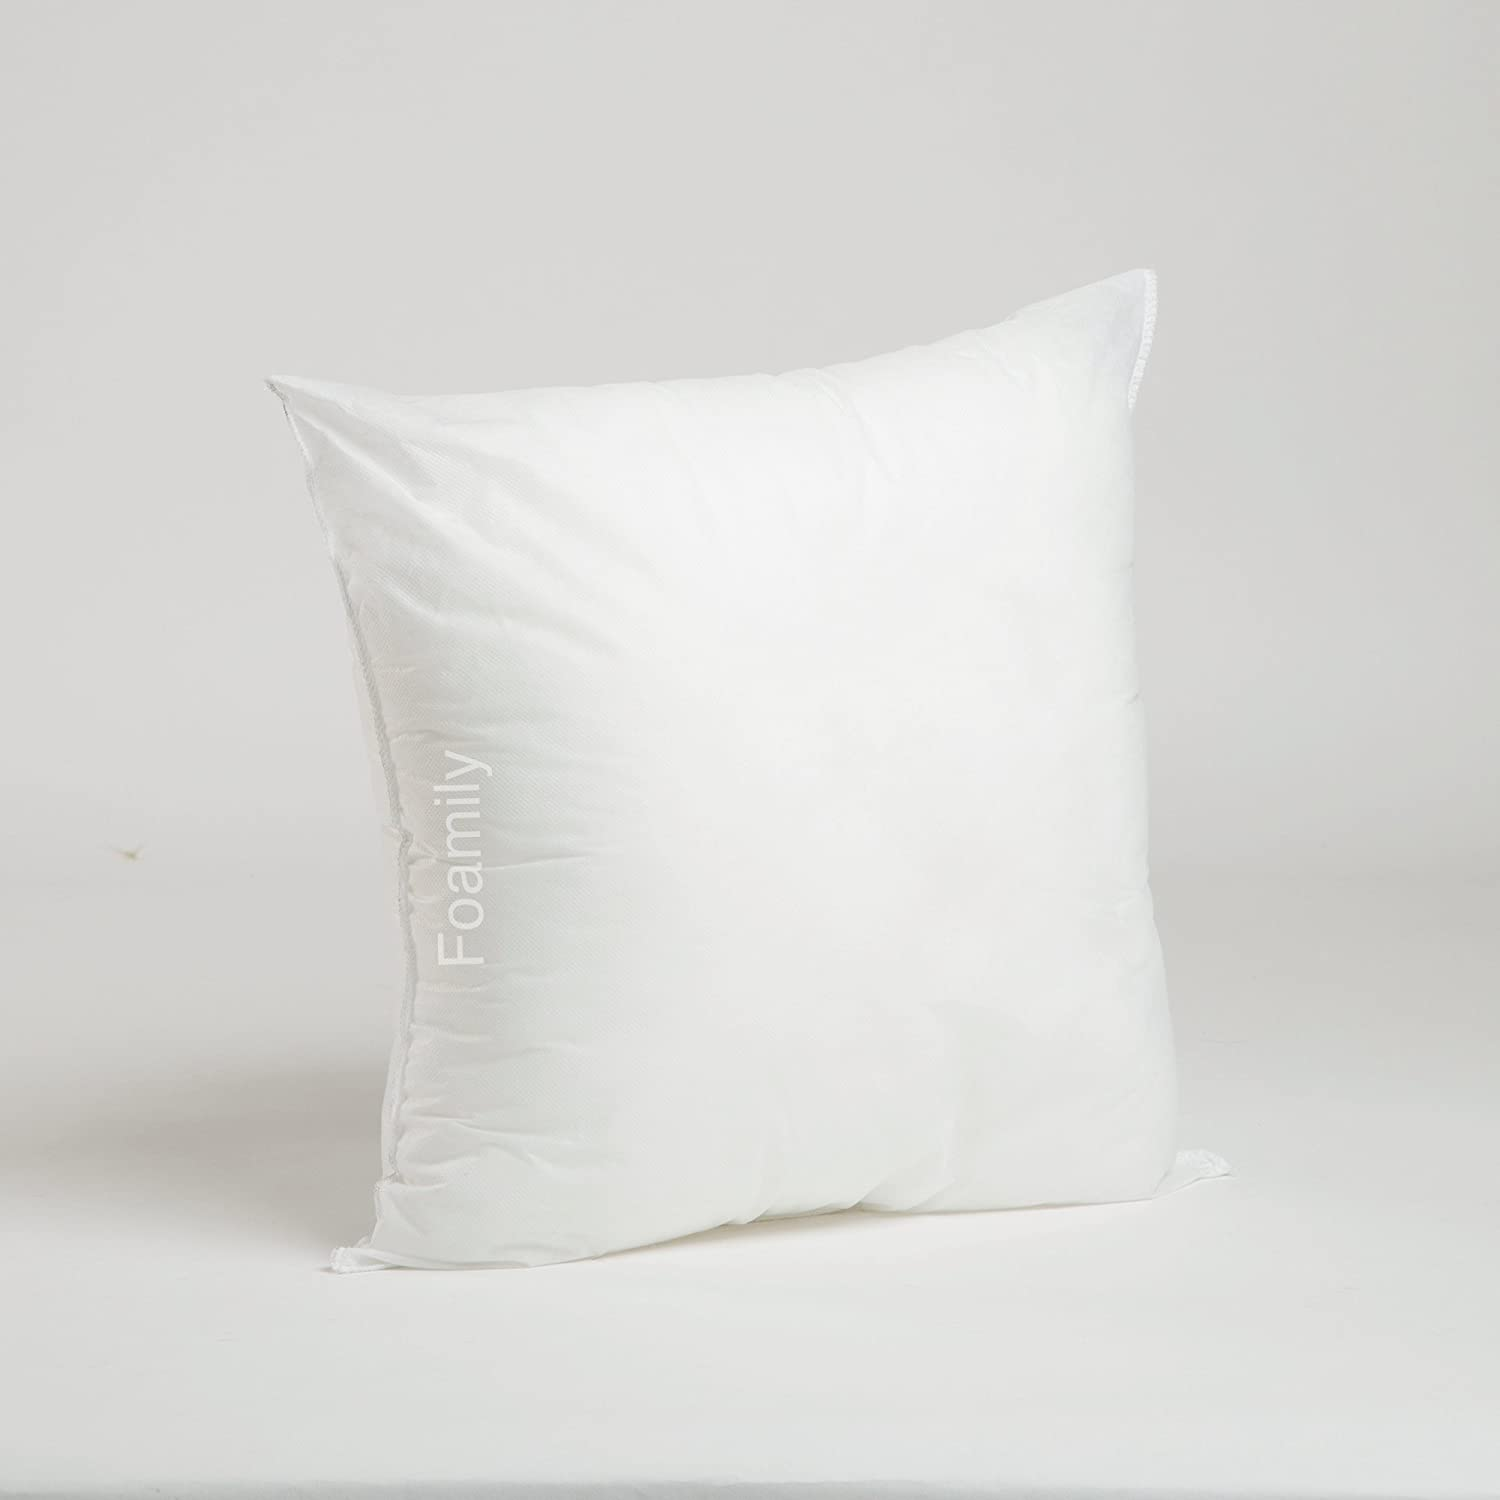 1 24 Of 765,859 Results For Home U0026 Kitchen : Bedding : Decorative Pillows,  Inserts U0026 Covers